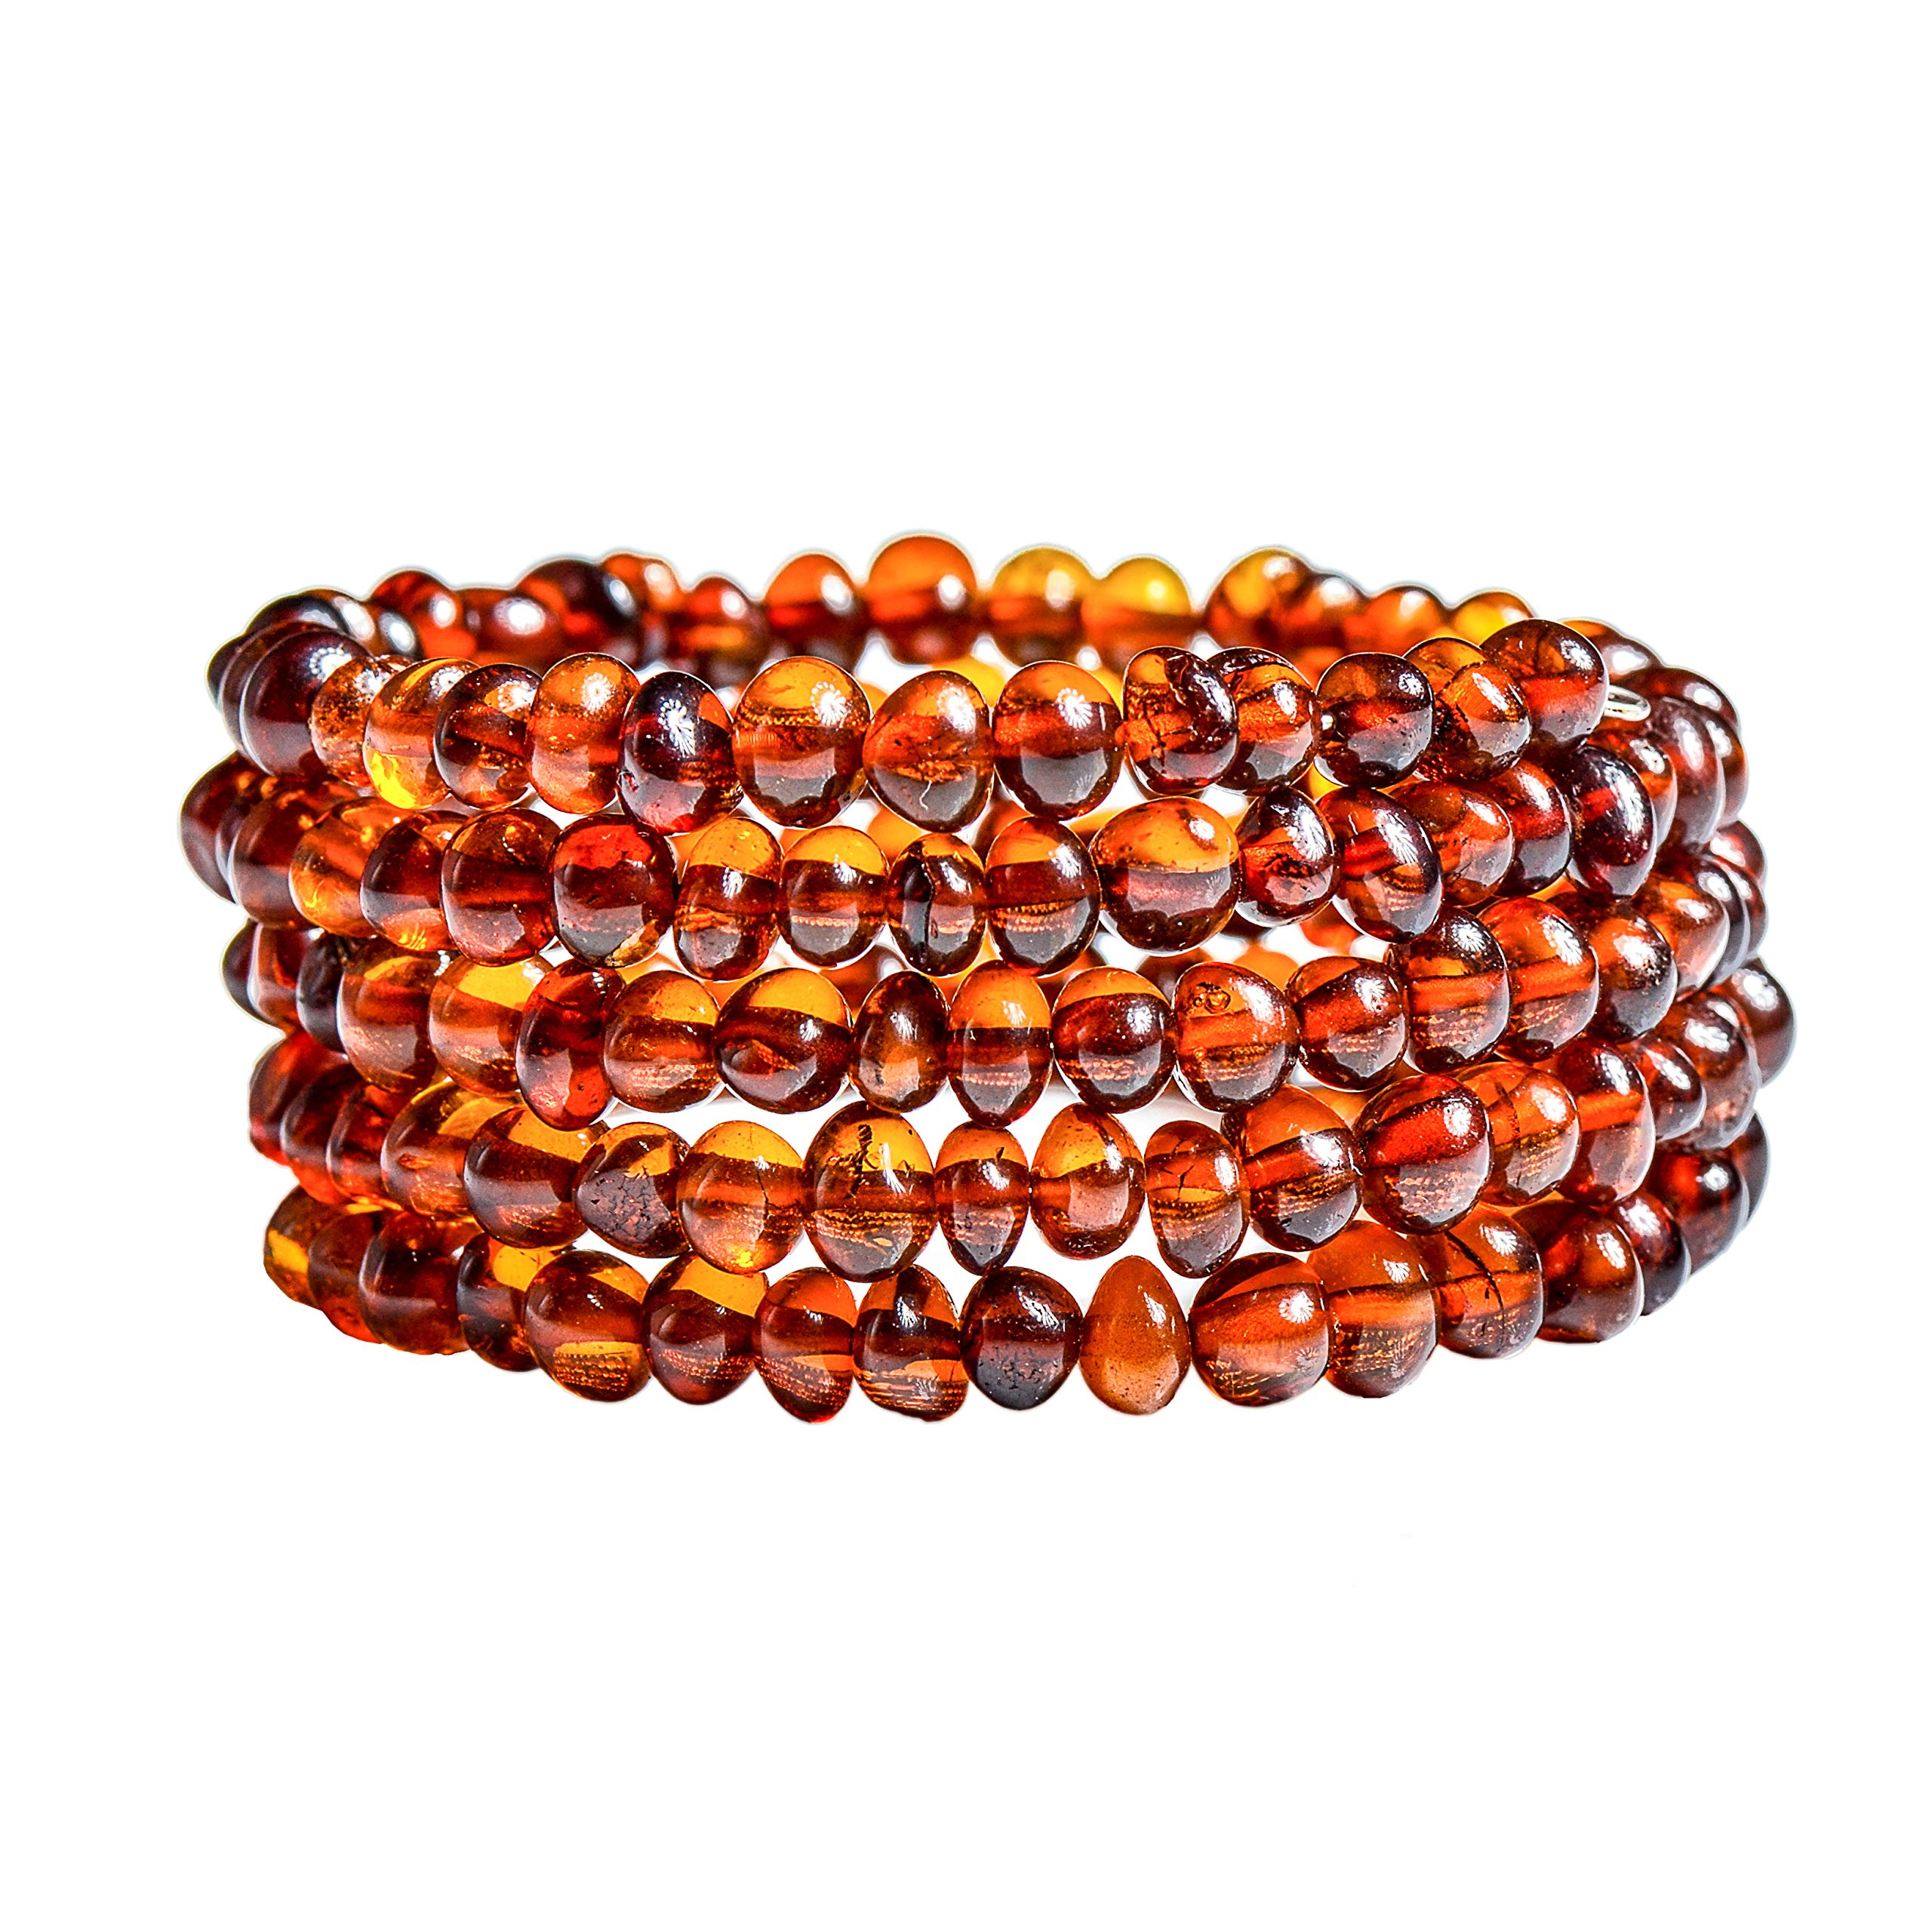 Genuine Baltic Amber Bracelet for Women - Made on Memory Wire - Handmade Natural Amber Beads Jewelry for Adult (Cognac) by Genuine Amber